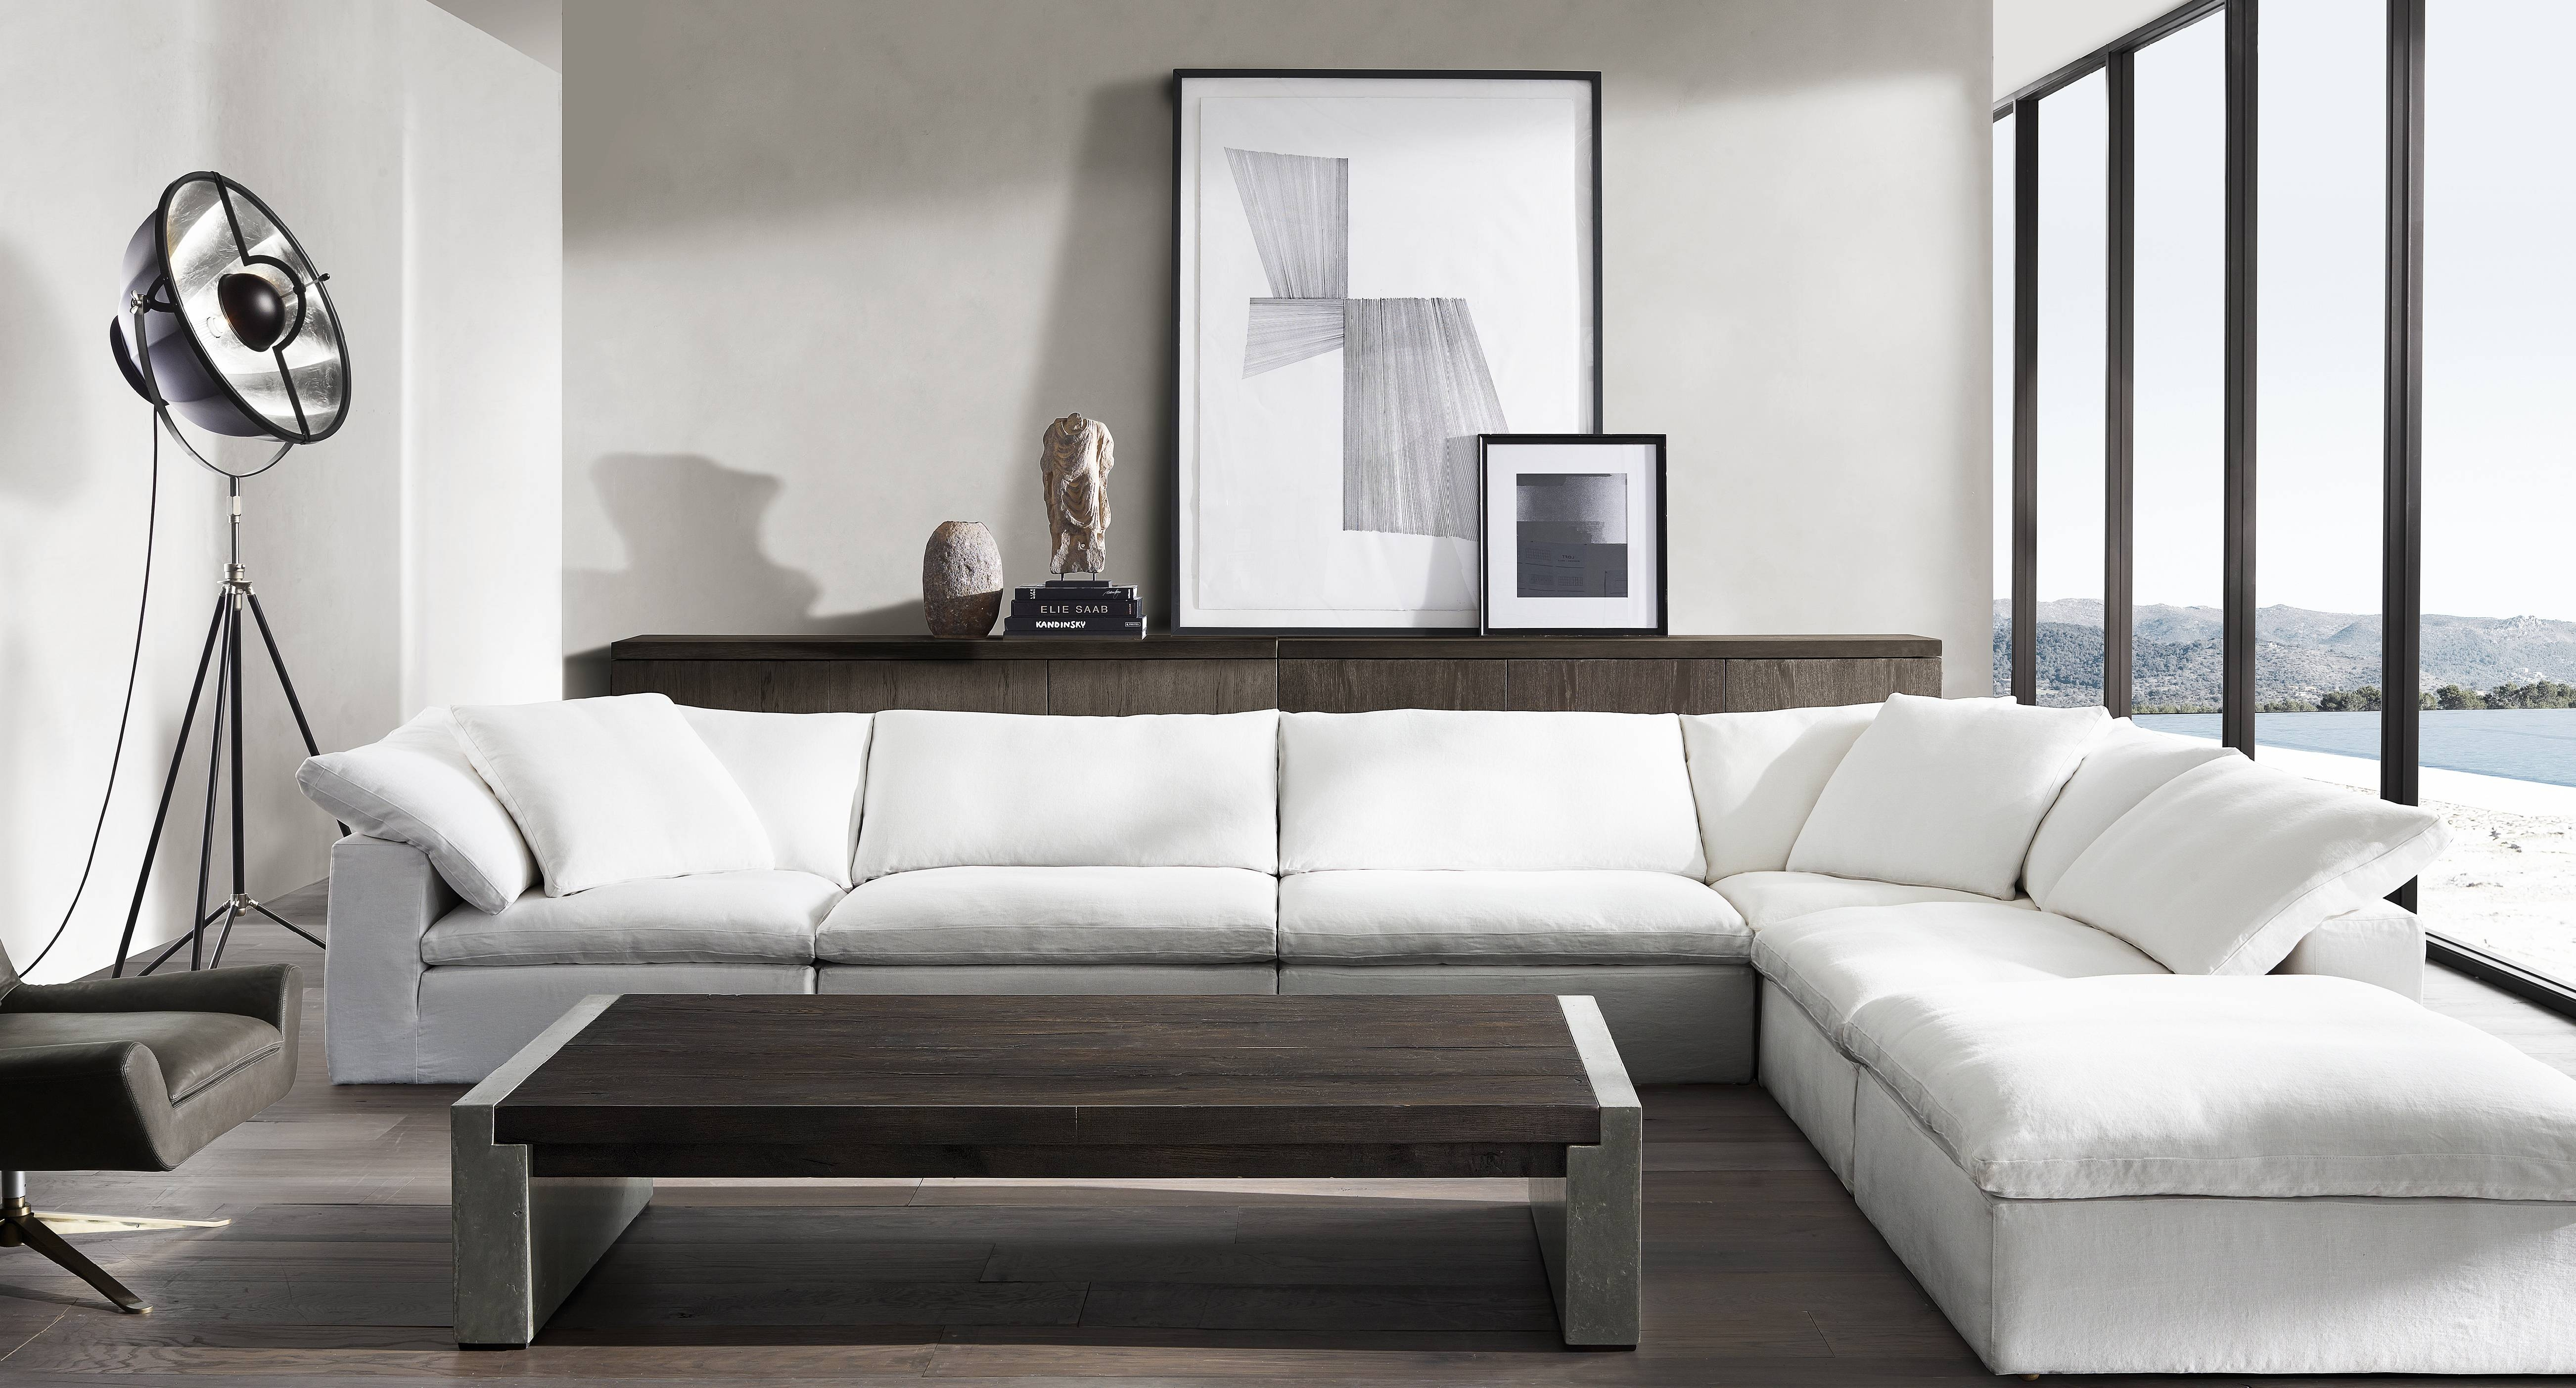 Sofa: Restoration Hardware Sectional Sofas | Restoration Hardware regarding Cloud Sectional Sofas (Image 13 of 15)